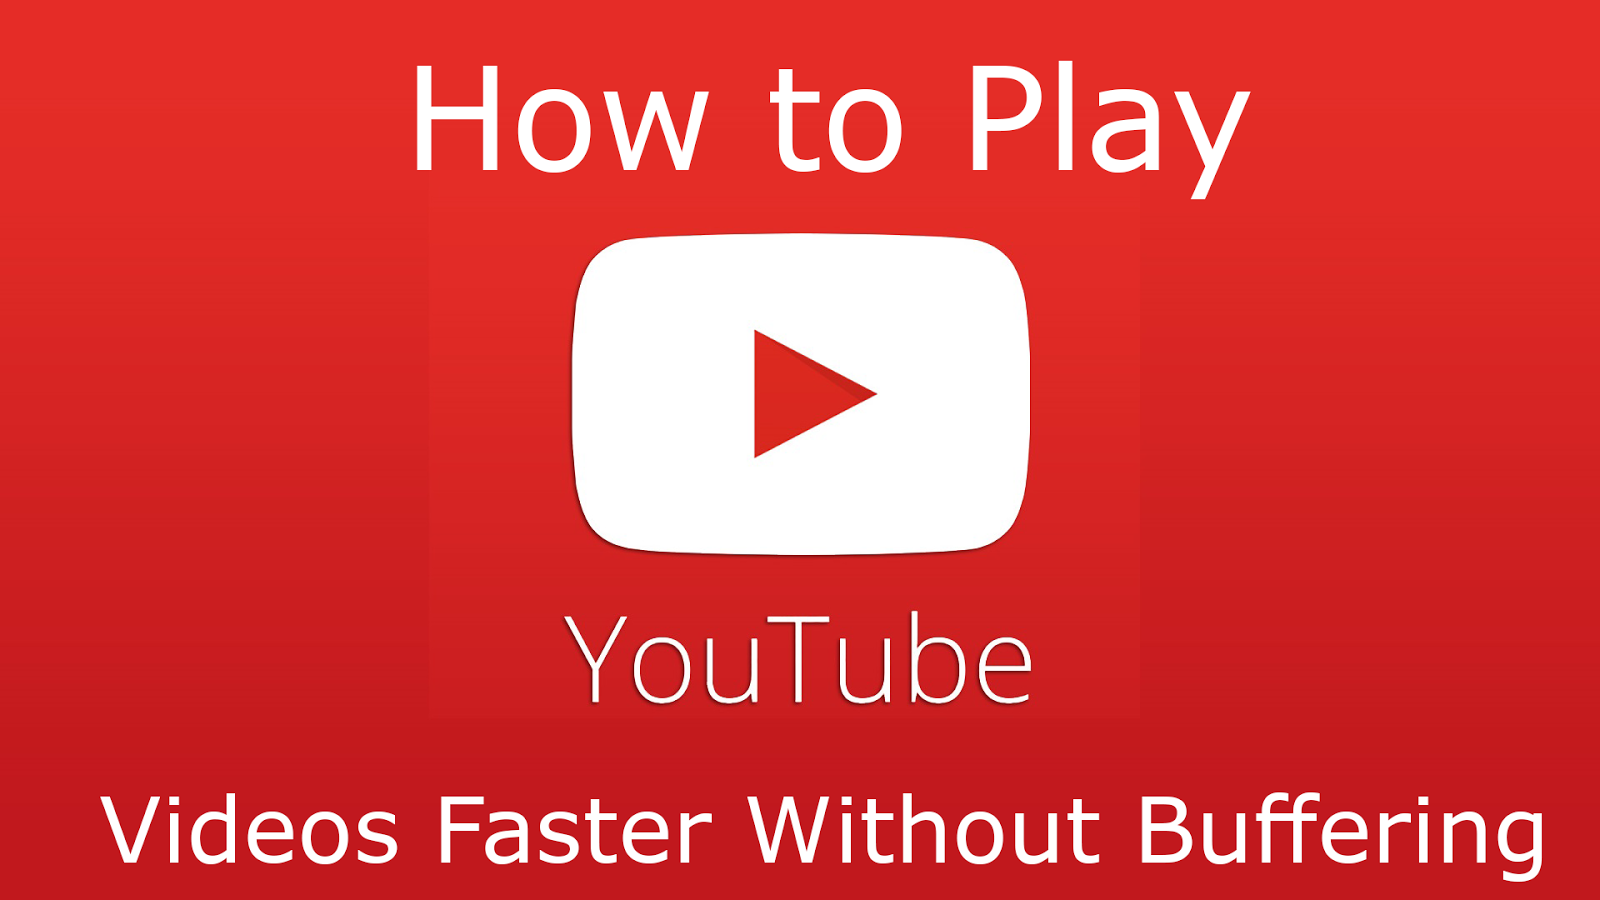 Playyoutubefaster How To Play Youtube Videos